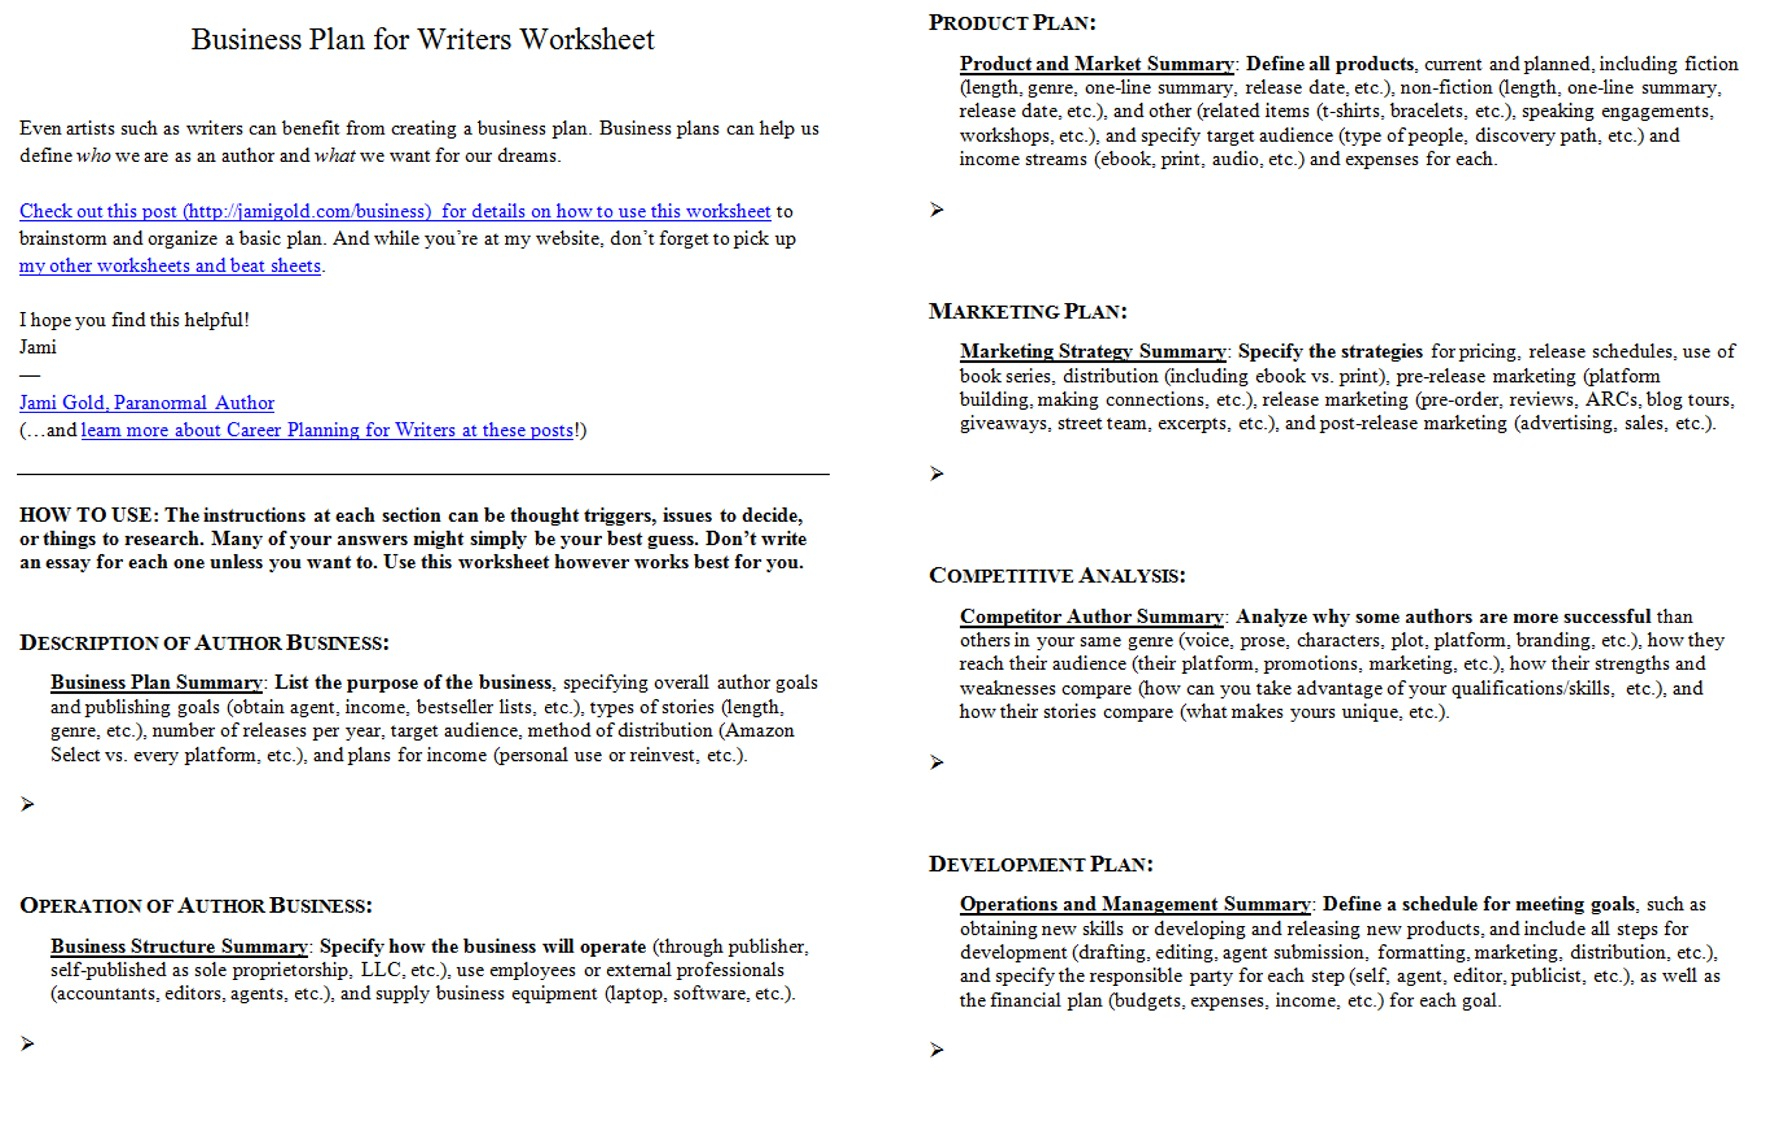 Proatmealus  Ravishing Worksheets For Writers  Jami Gold Paranormal Author With Glamorous Screen Shot Of Both Pages Of The Business Plan For Writers Worksheet With Cute Singular Plural Nouns Worksheet Also World History Worksheet Answers In Addition Editing Worksheet And Protect Worksheet As Well As Classification Of Life Worksheet Additionally Free First Grade Reading Comprehension Worksheets From Jamigoldcom With Proatmealus  Glamorous Worksheets For Writers  Jami Gold Paranormal Author With Cute Screen Shot Of Both Pages Of The Business Plan For Writers Worksheet And Ravishing Singular Plural Nouns Worksheet Also World History Worksheet Answers In Addition Editing Worksheet From Jamigoldcom